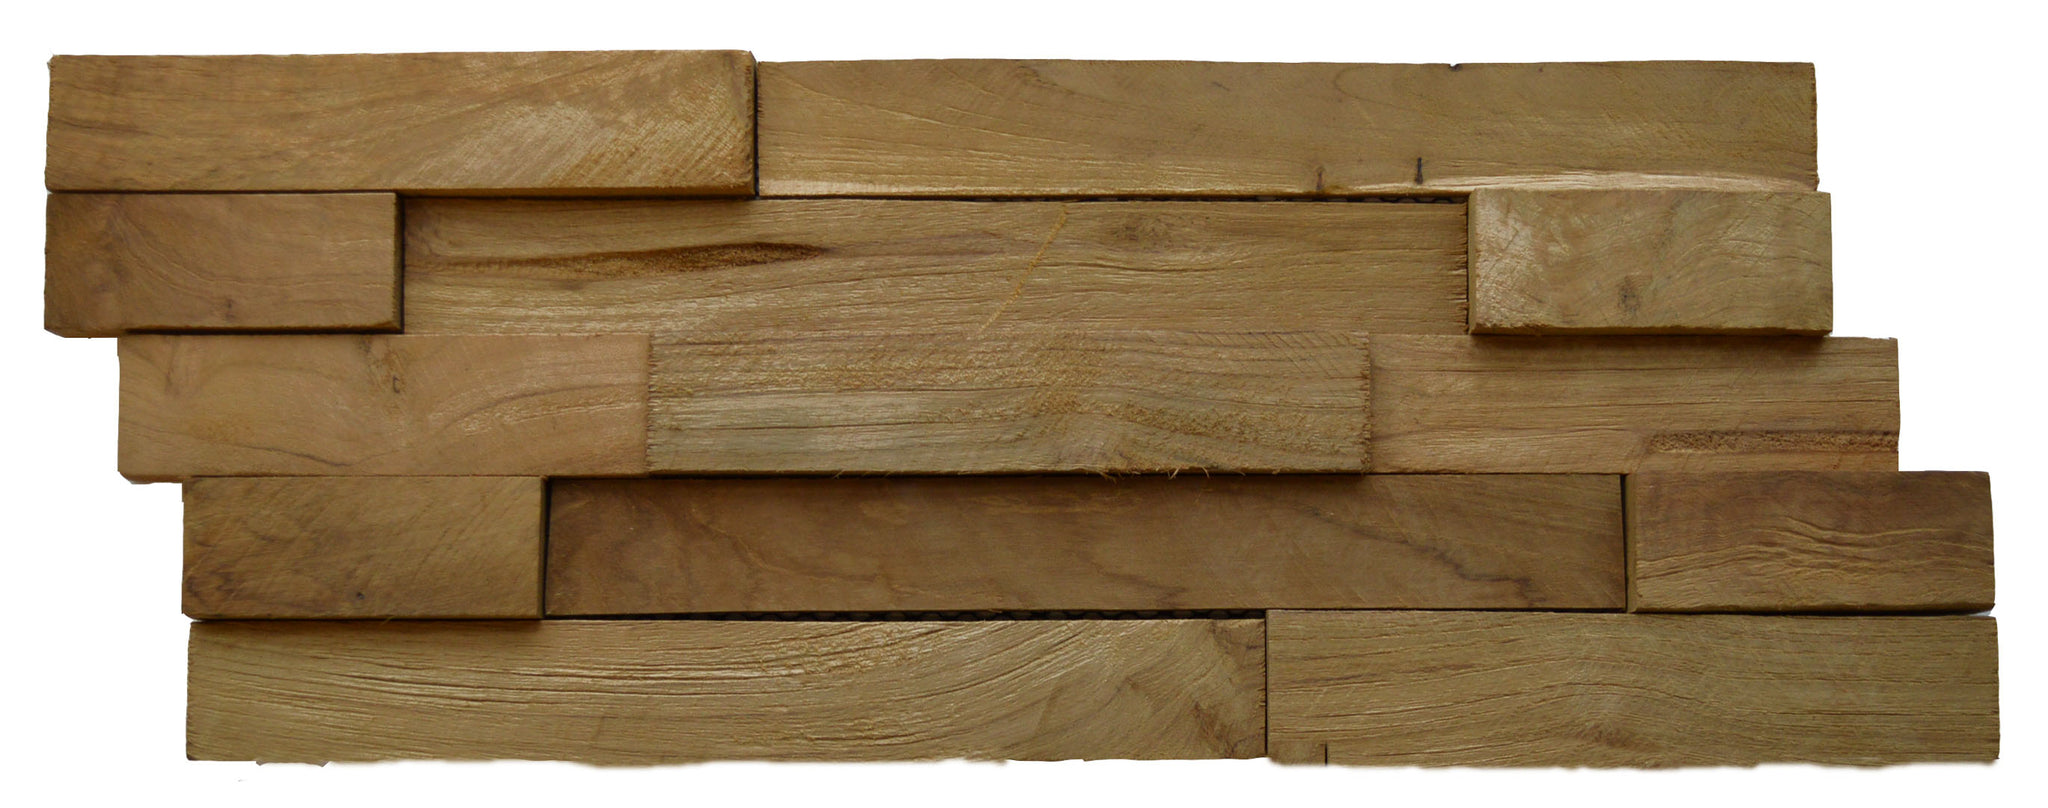 "Recycled Teak Natural 1 1/2"" Cladding"